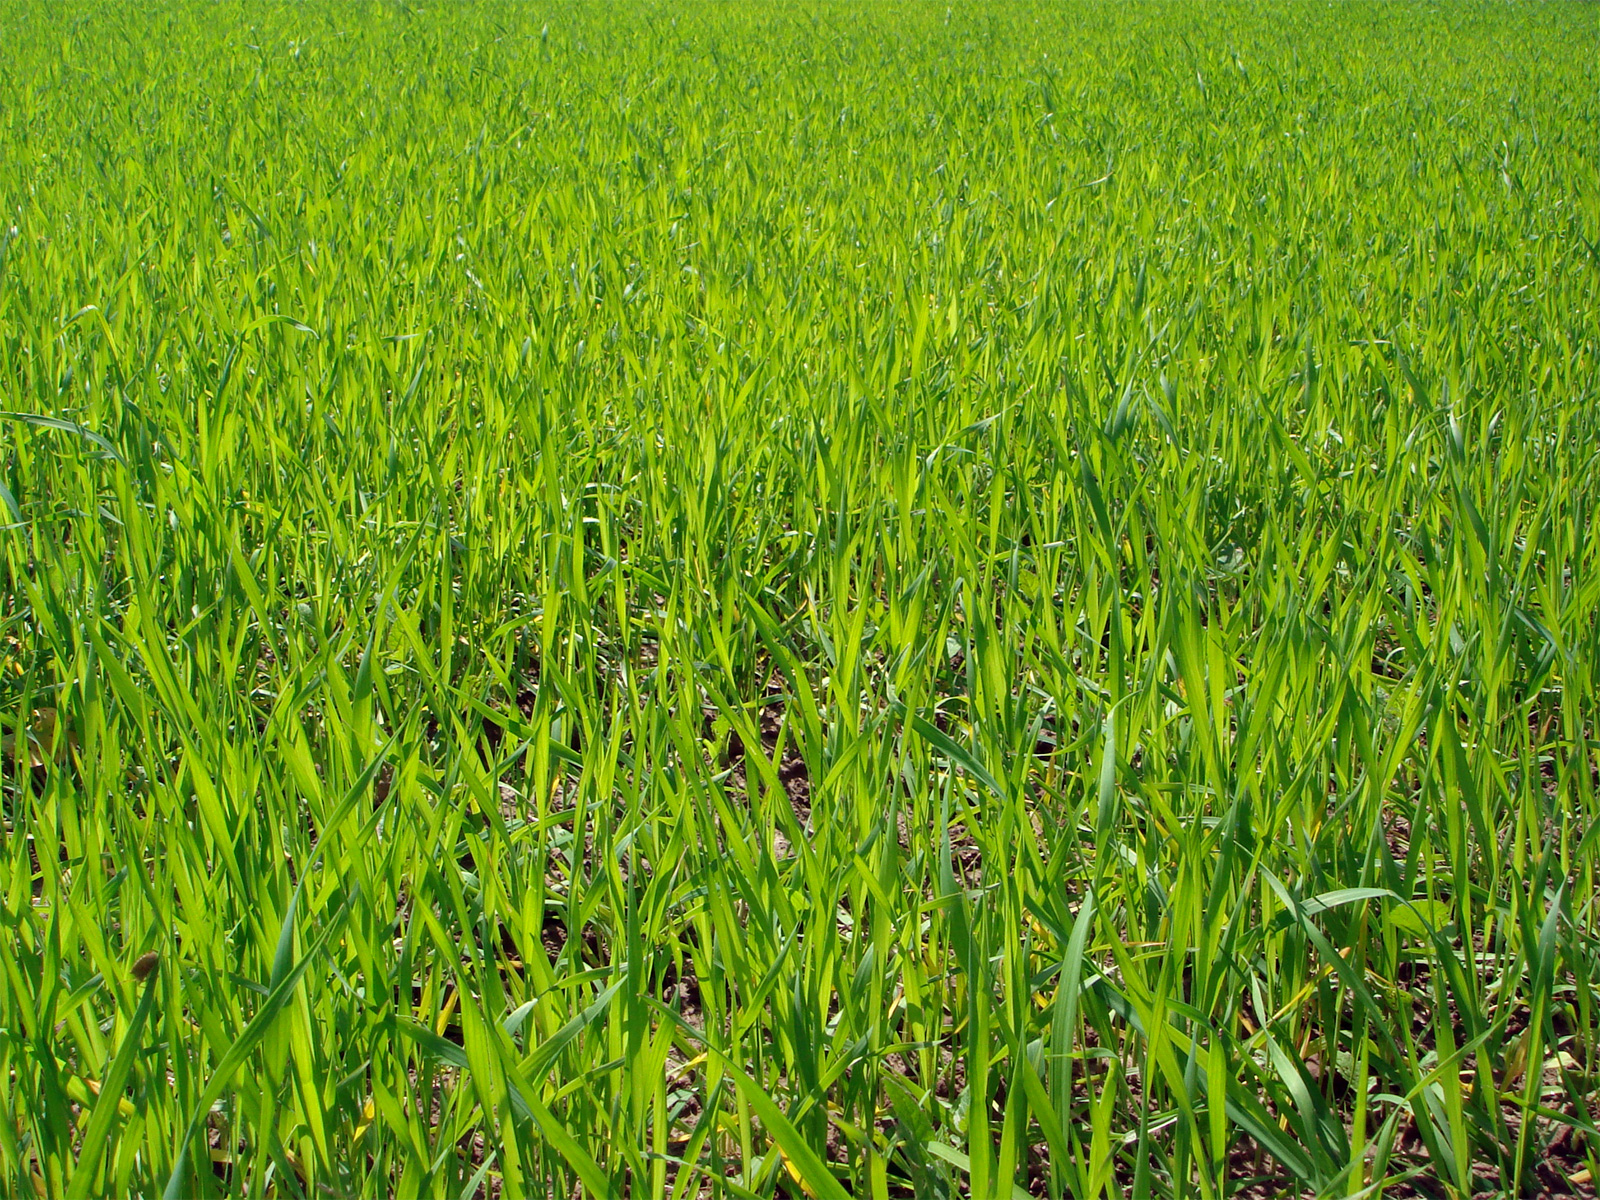 fields and grass - photo #48